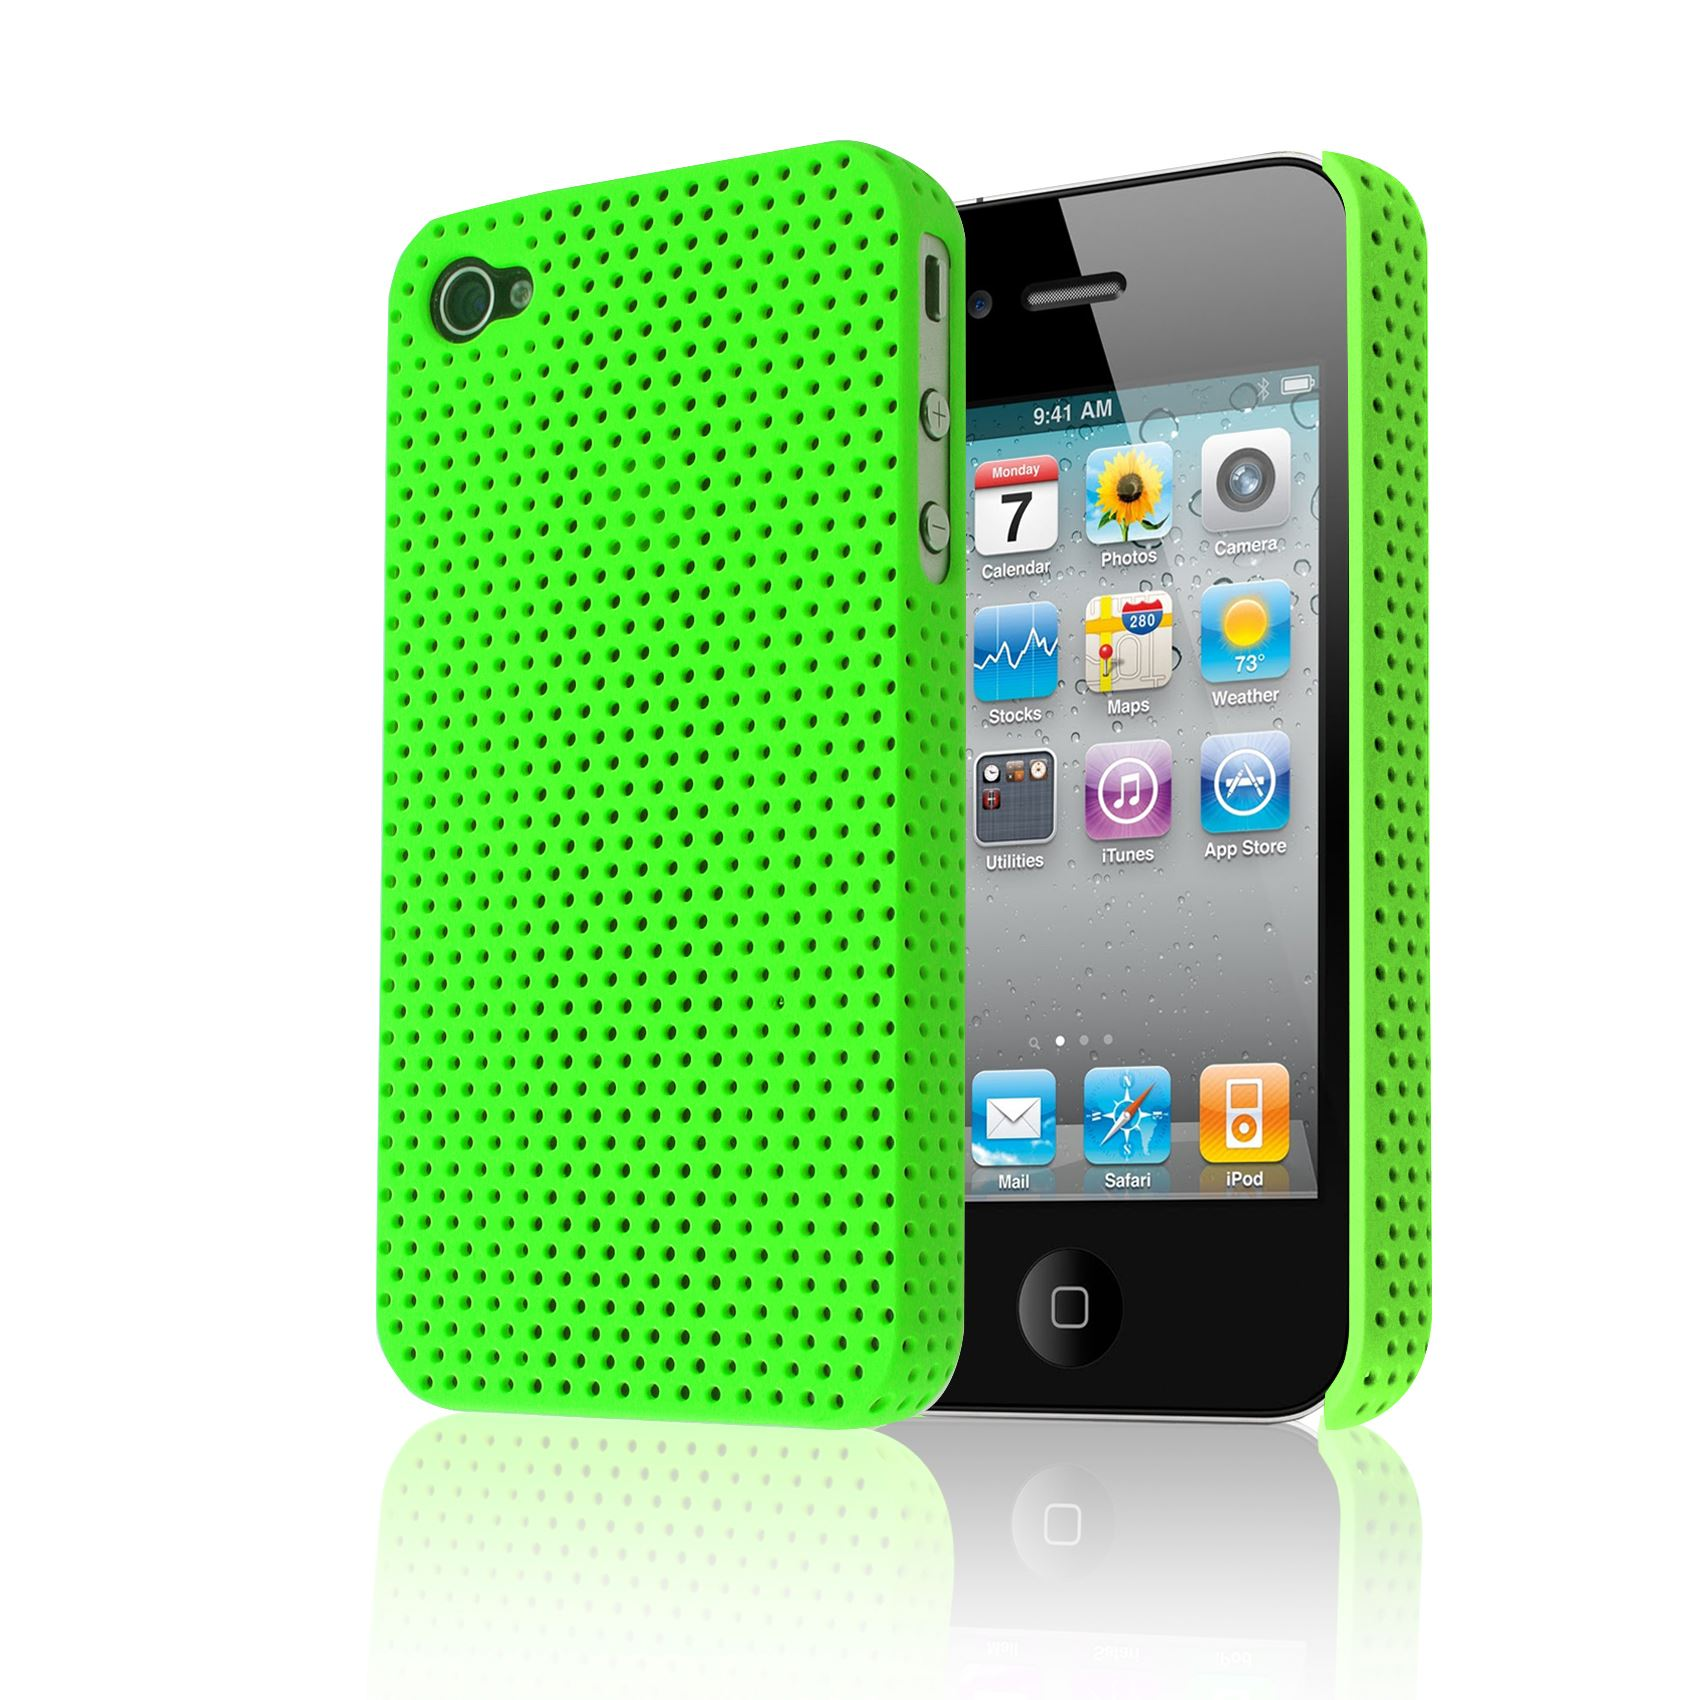 iphone 4s 4g mesh perforated back impact plastic cover for 10899